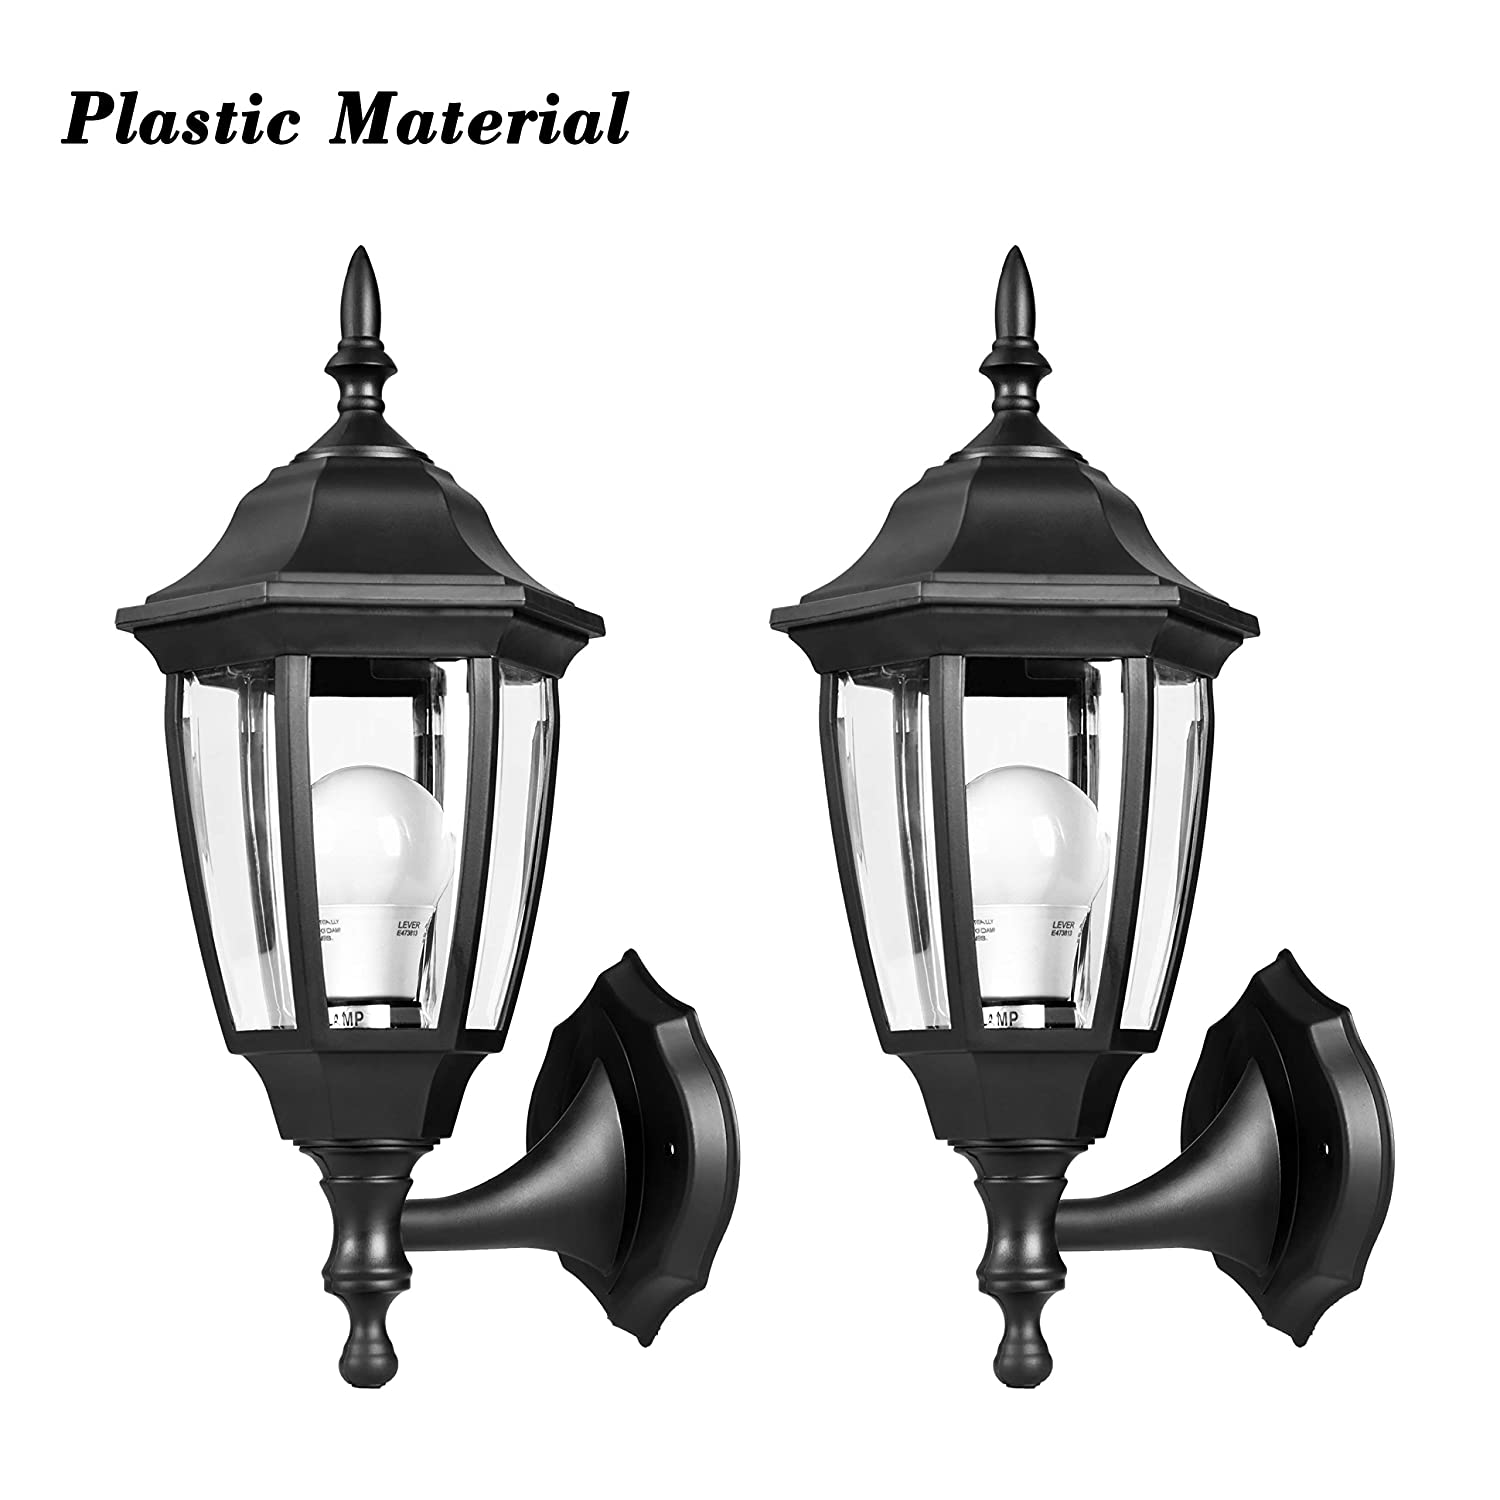 Emart outdoor porch light led exterior wall light fixtures special handling anti corrosion plastic material waterproof security lamp for wall